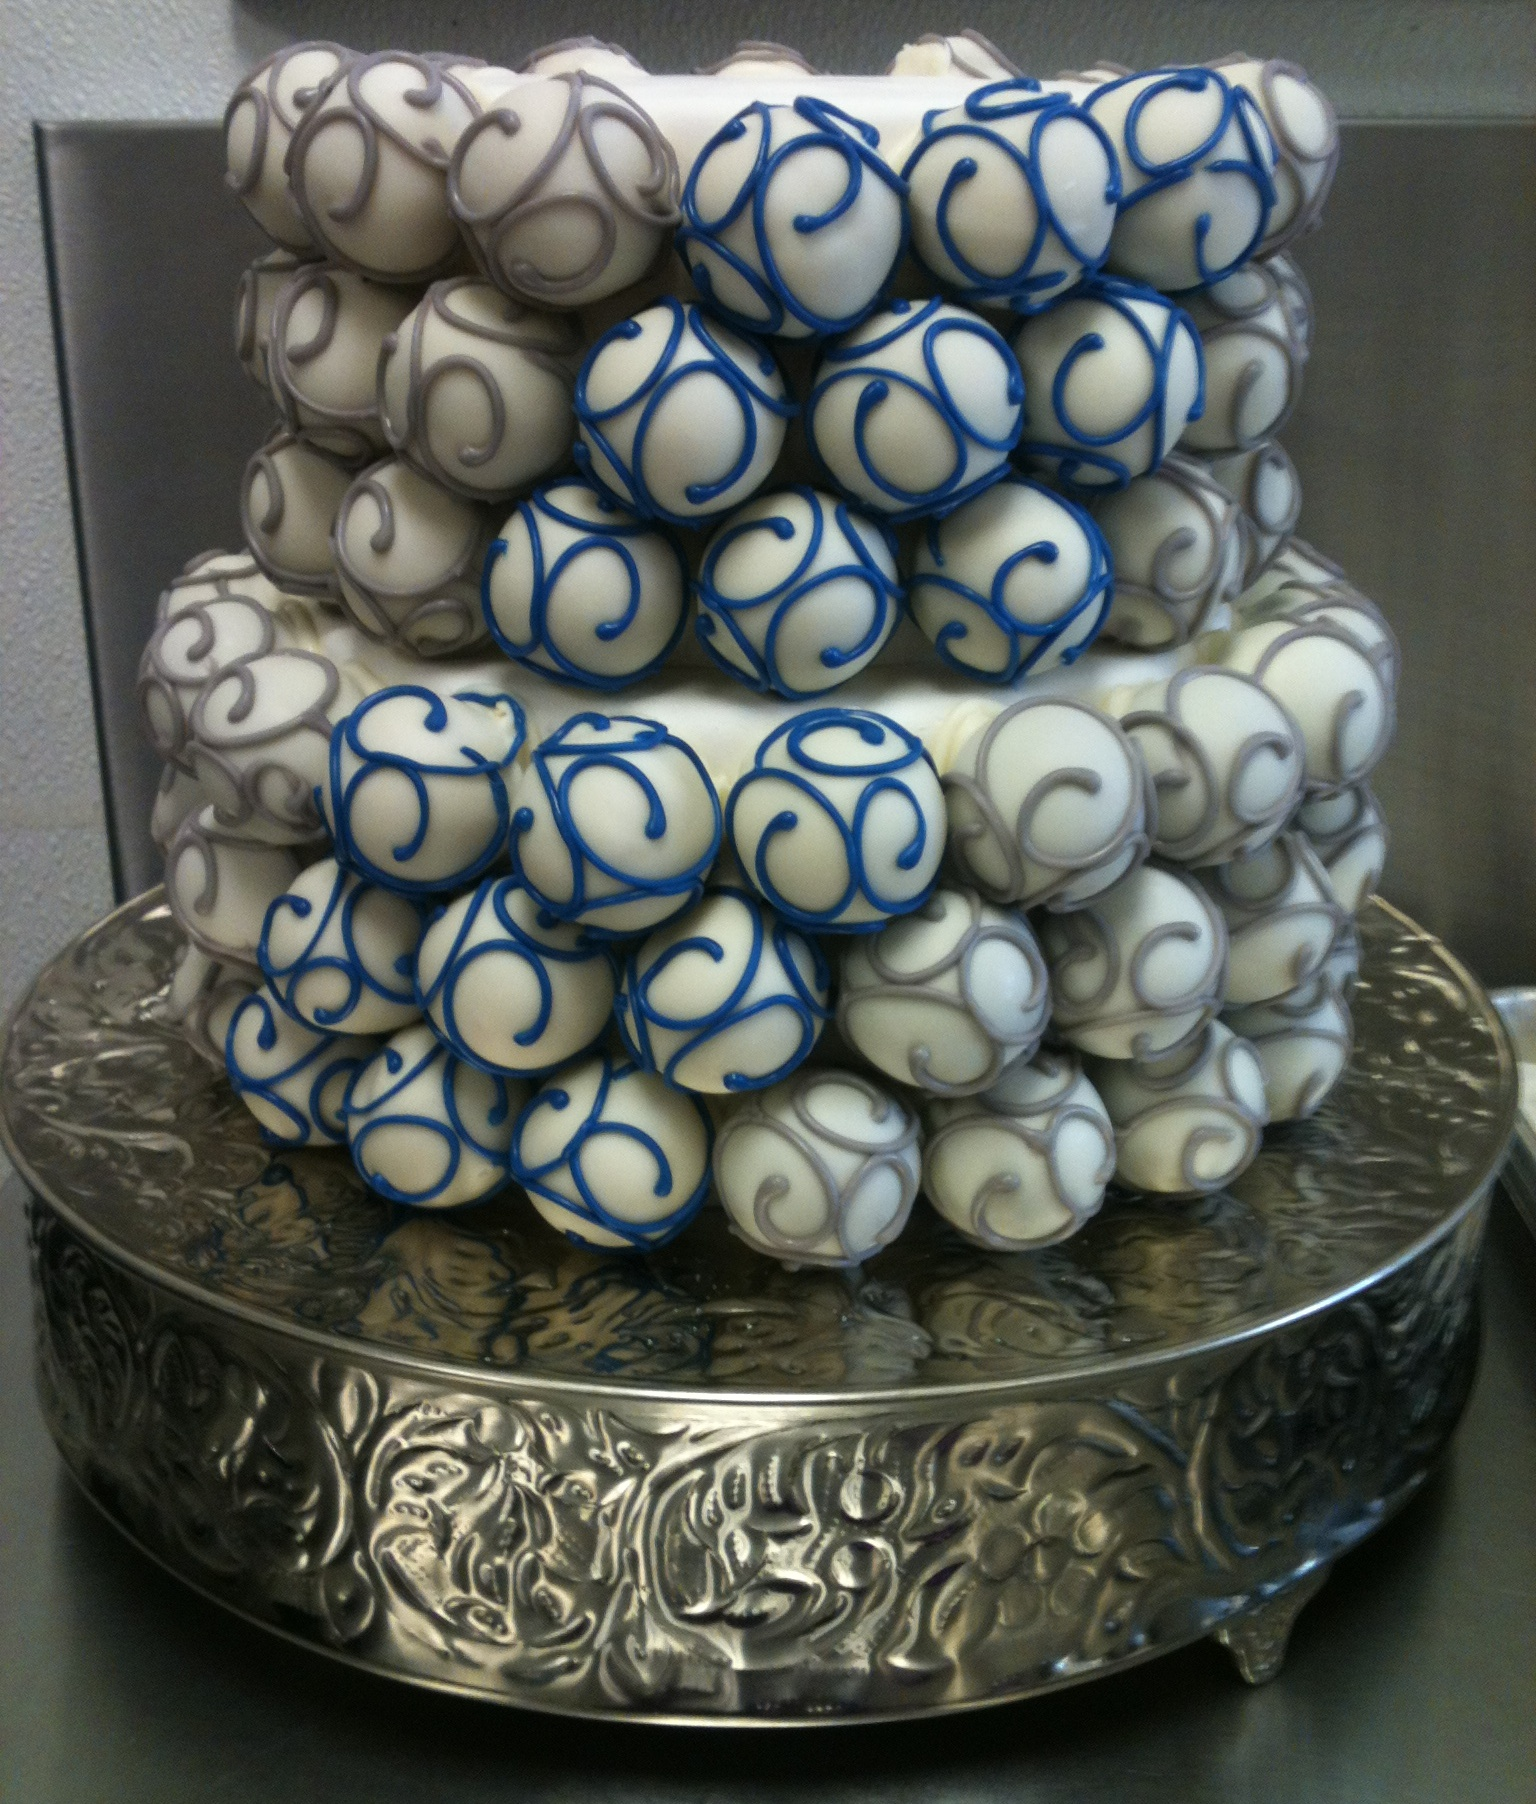 grey-and-blue-cake-ball-cake.jpg